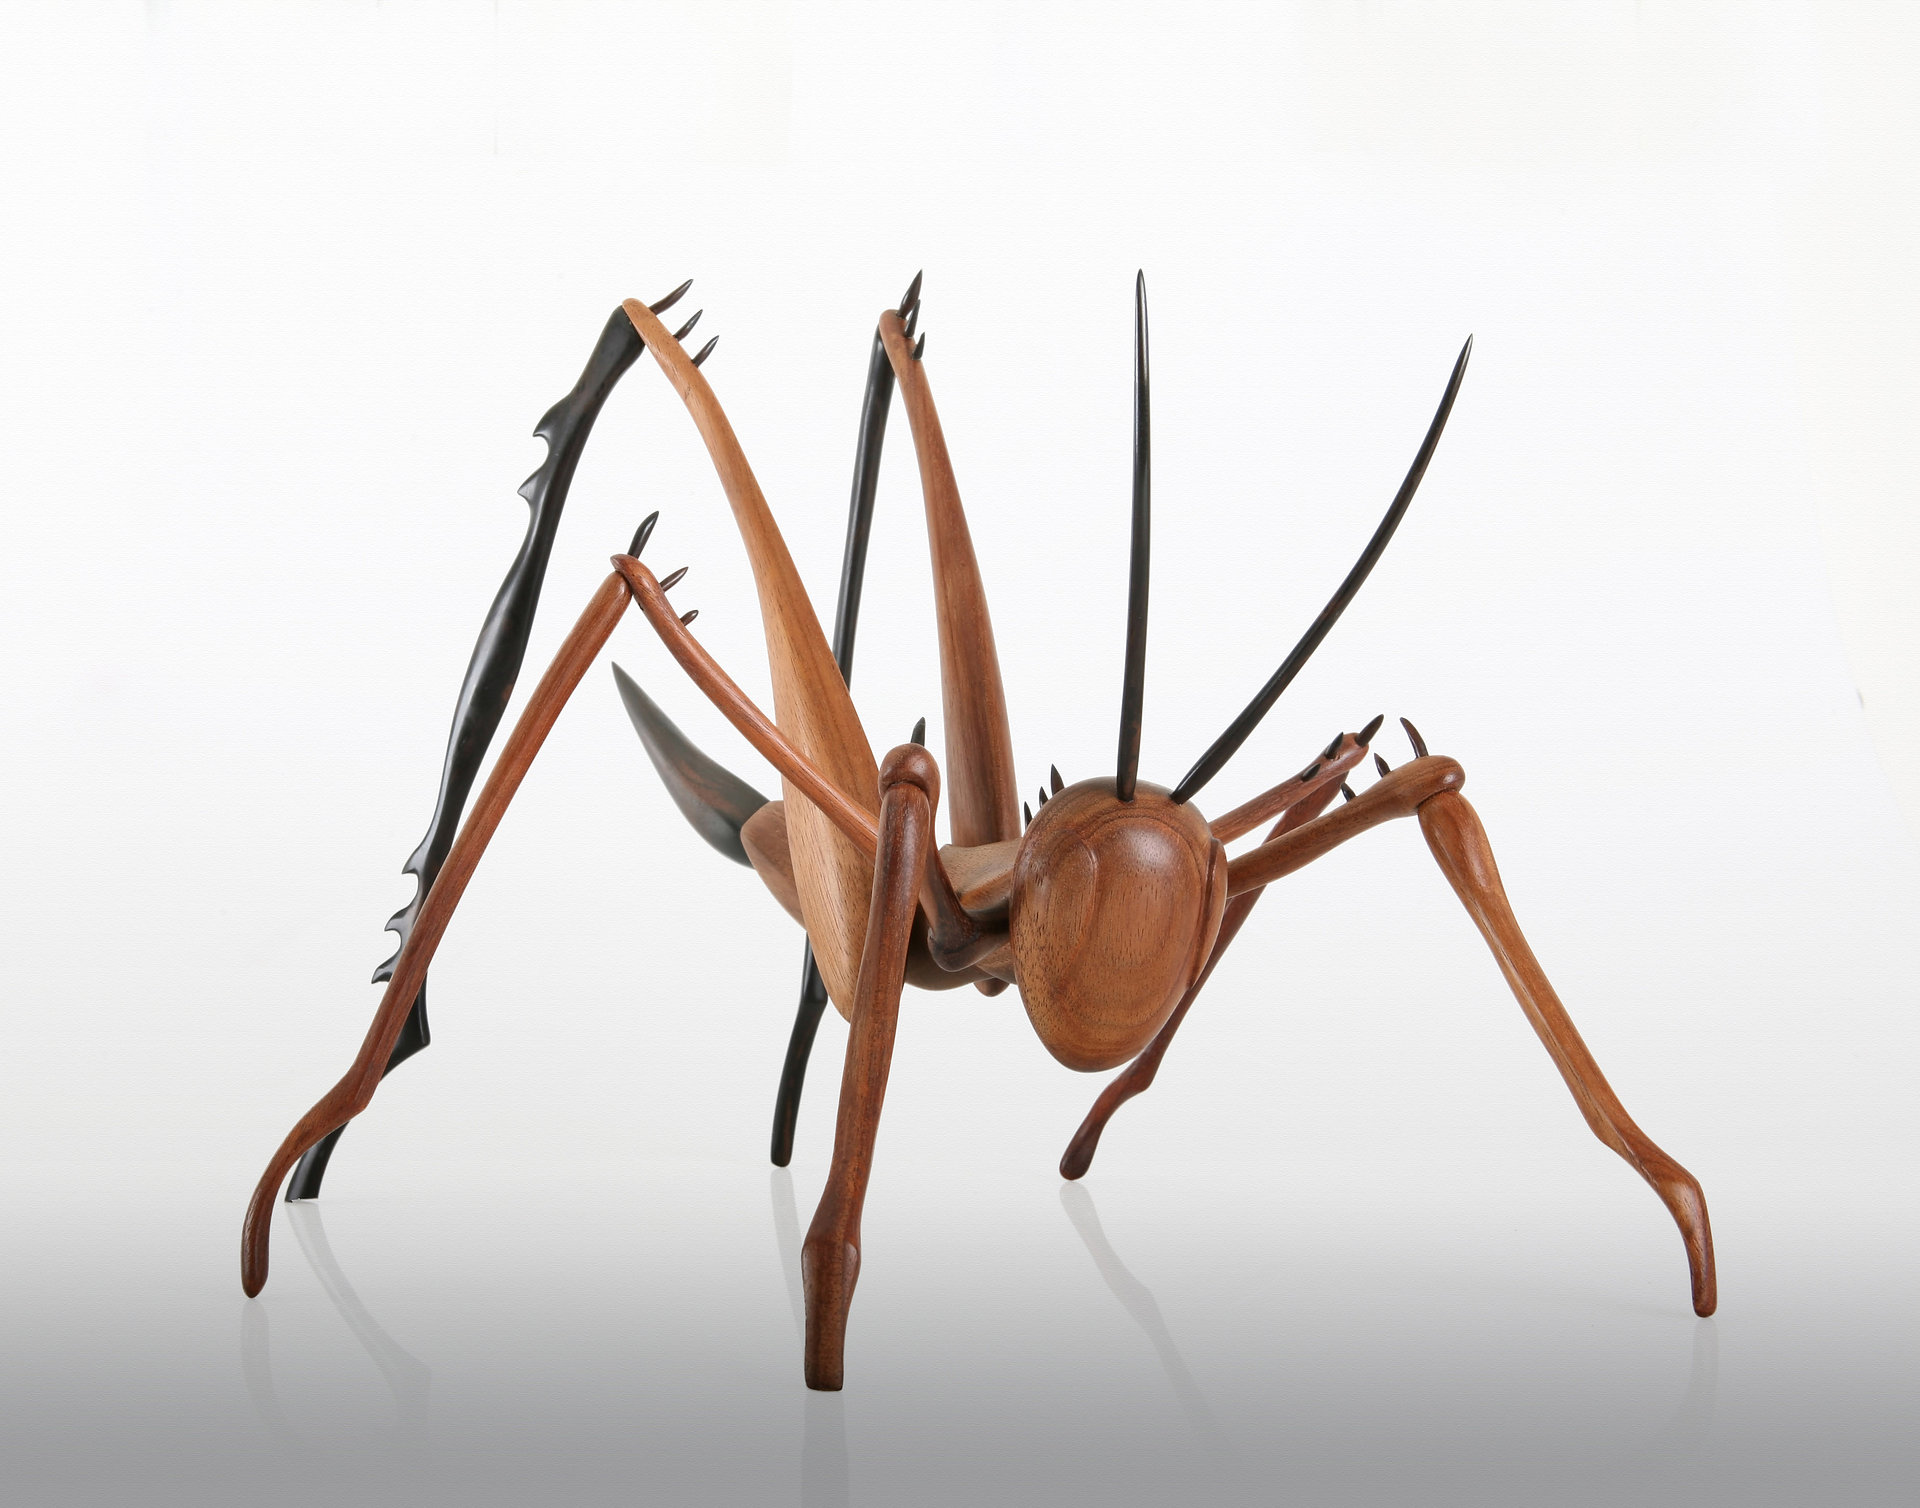 Wooden Insect Sculpture, Cricket